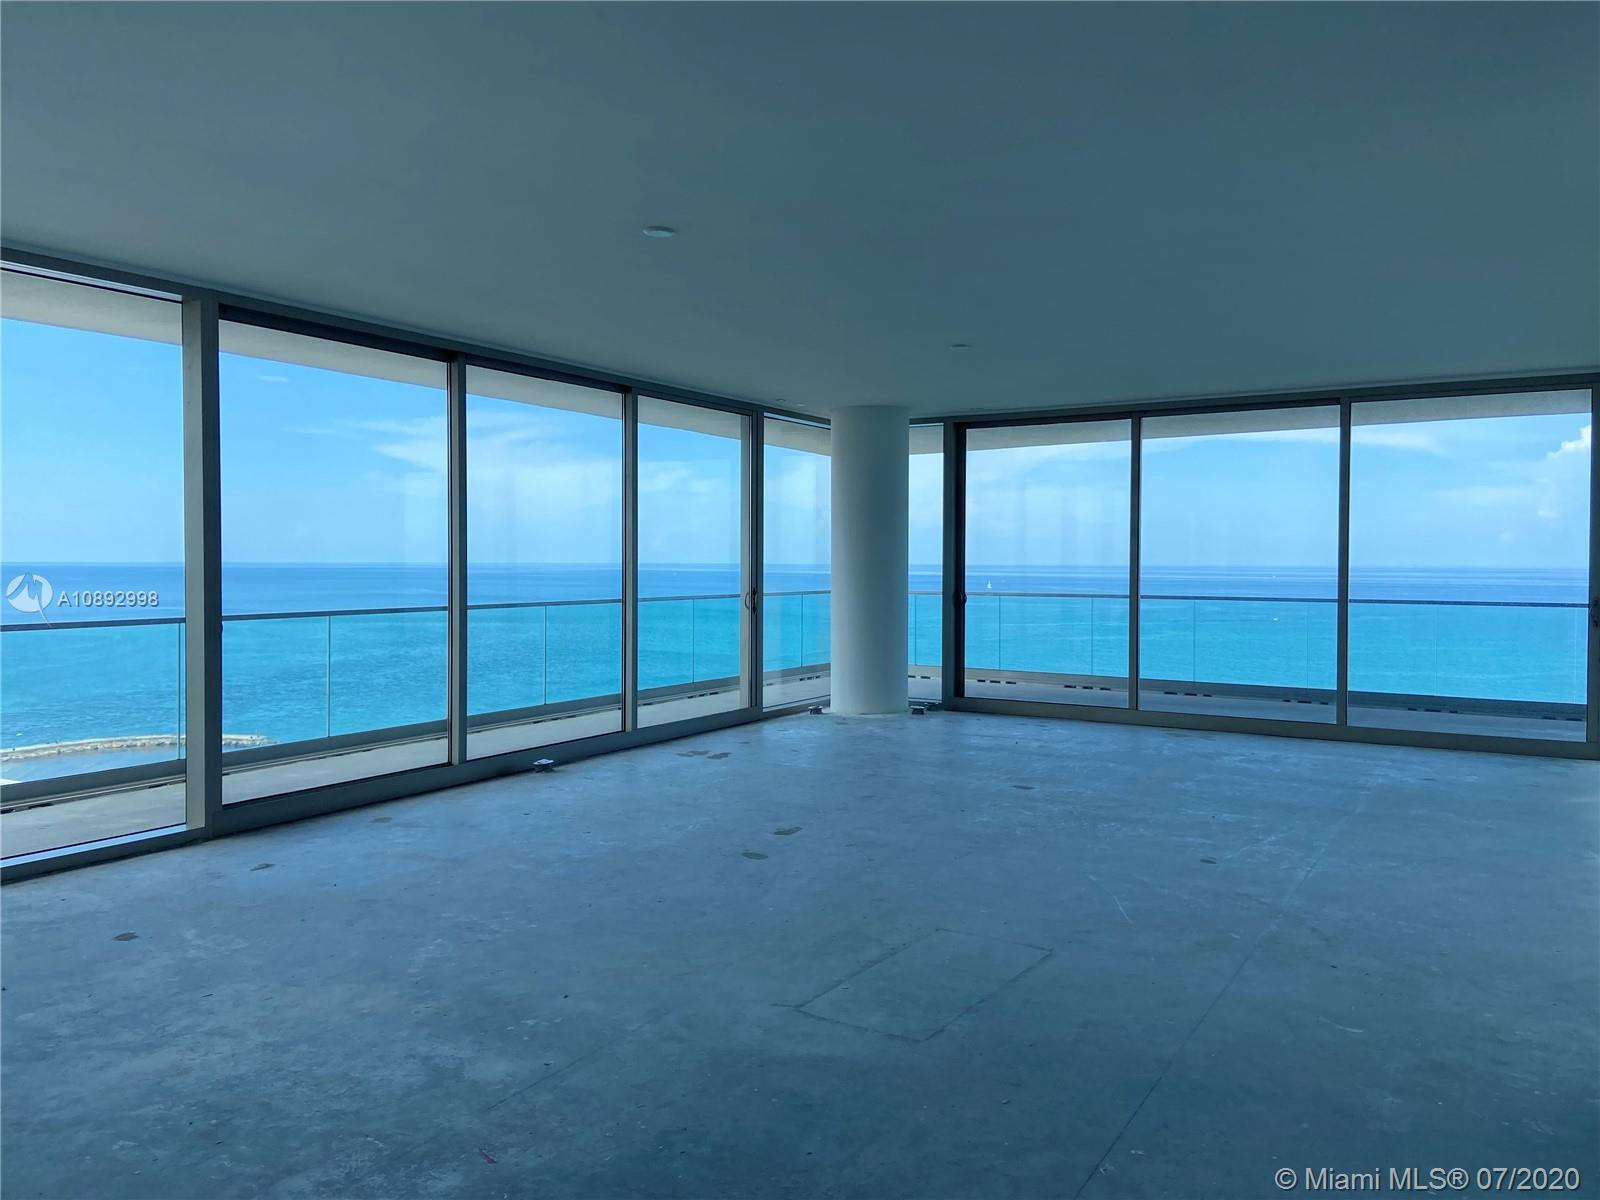 AMAZING MODEL UNIT completely turn key @ OCEANA BAL HARBOUR: Worth to see and show! The most beautiful in Oceana. Big corner unit and flow-through units with unobstructed views to Ocean and Bay. Amazing wrap around terrace of about 1,600 SF on top to the 4,185 SF under AC. Fully finished and furnished as model unit for Oceana (furniture is optional and additional). 3 bedrooms, 4 baths, family Den and much more. Marble and wood floors, Dada Kitchens with Golden Calacatta, Gaggenau appliances and exquisitely finished and decorated . Turn Key unit, in the hart of Bal Harbour, the most exclusive and valued area in Miami. A MUST SEE!!